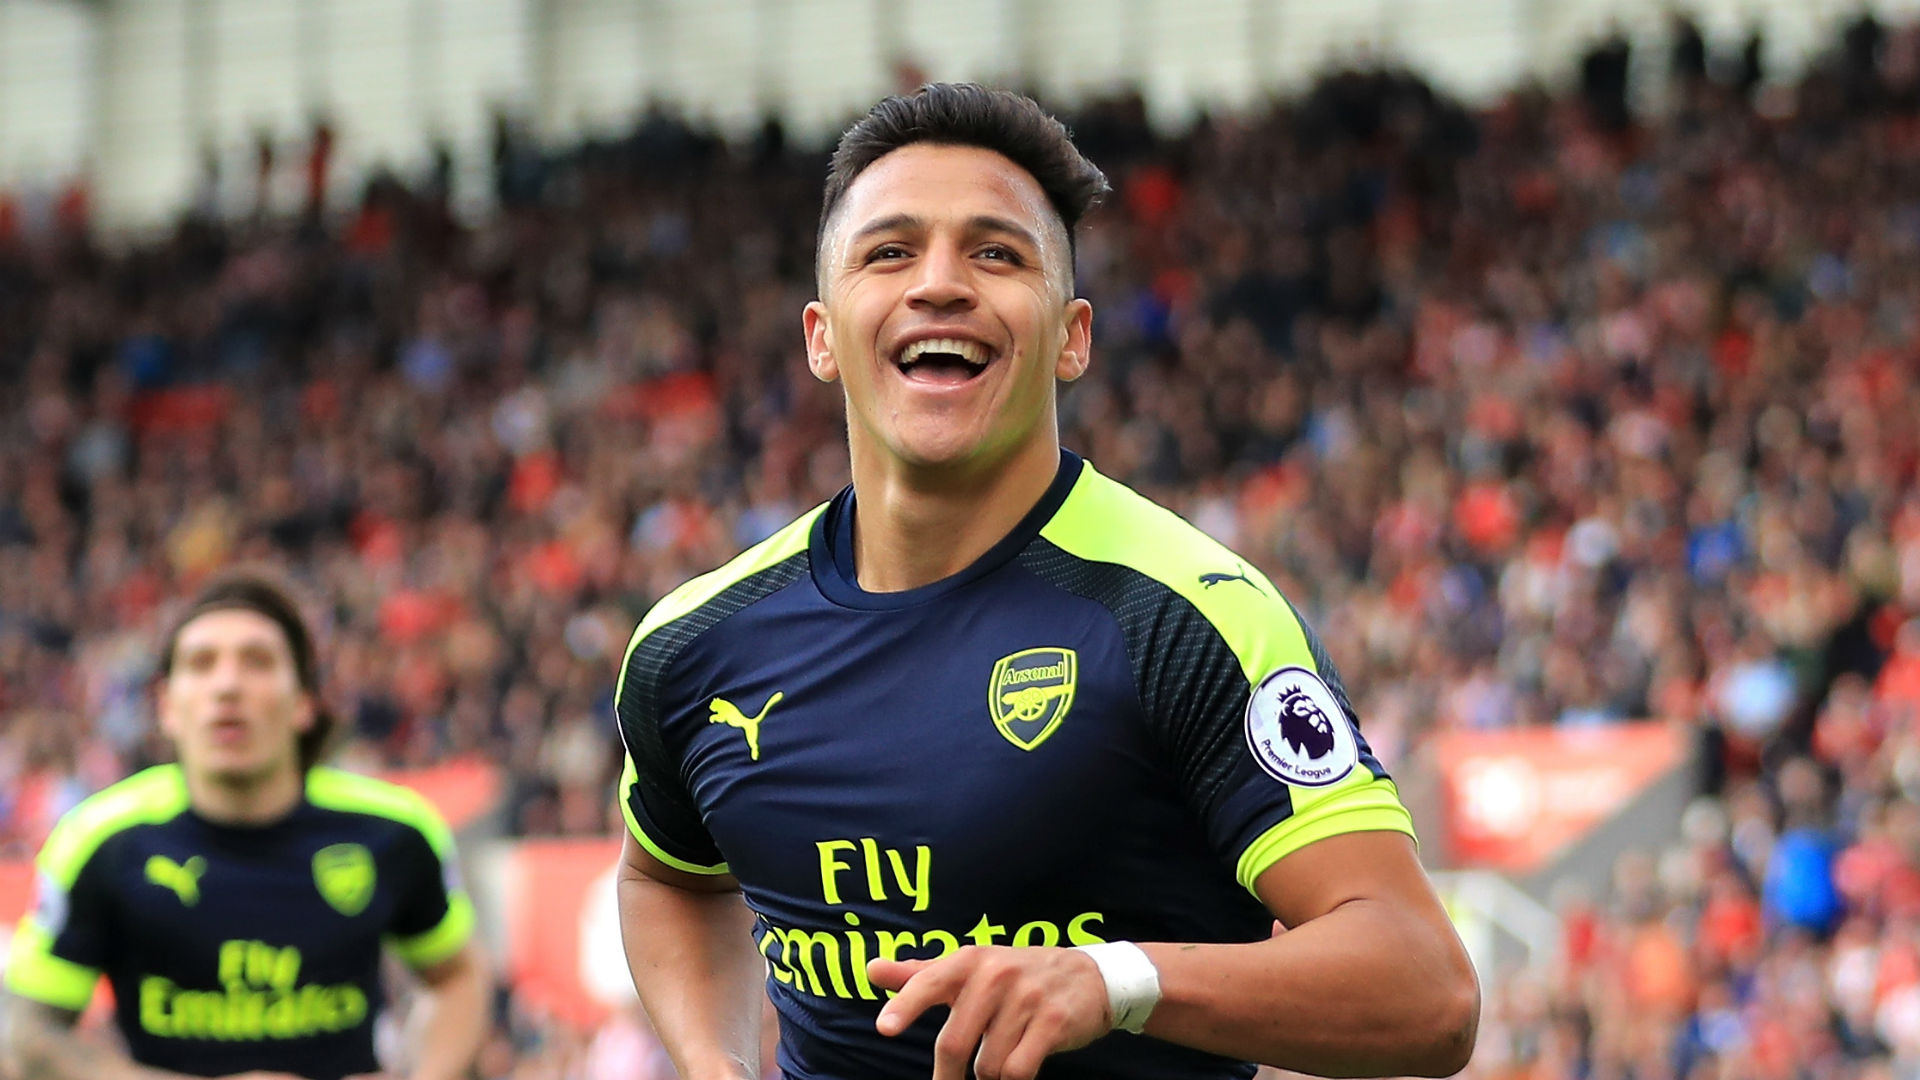 Alexis has become complete player at Arsenal- Wenger